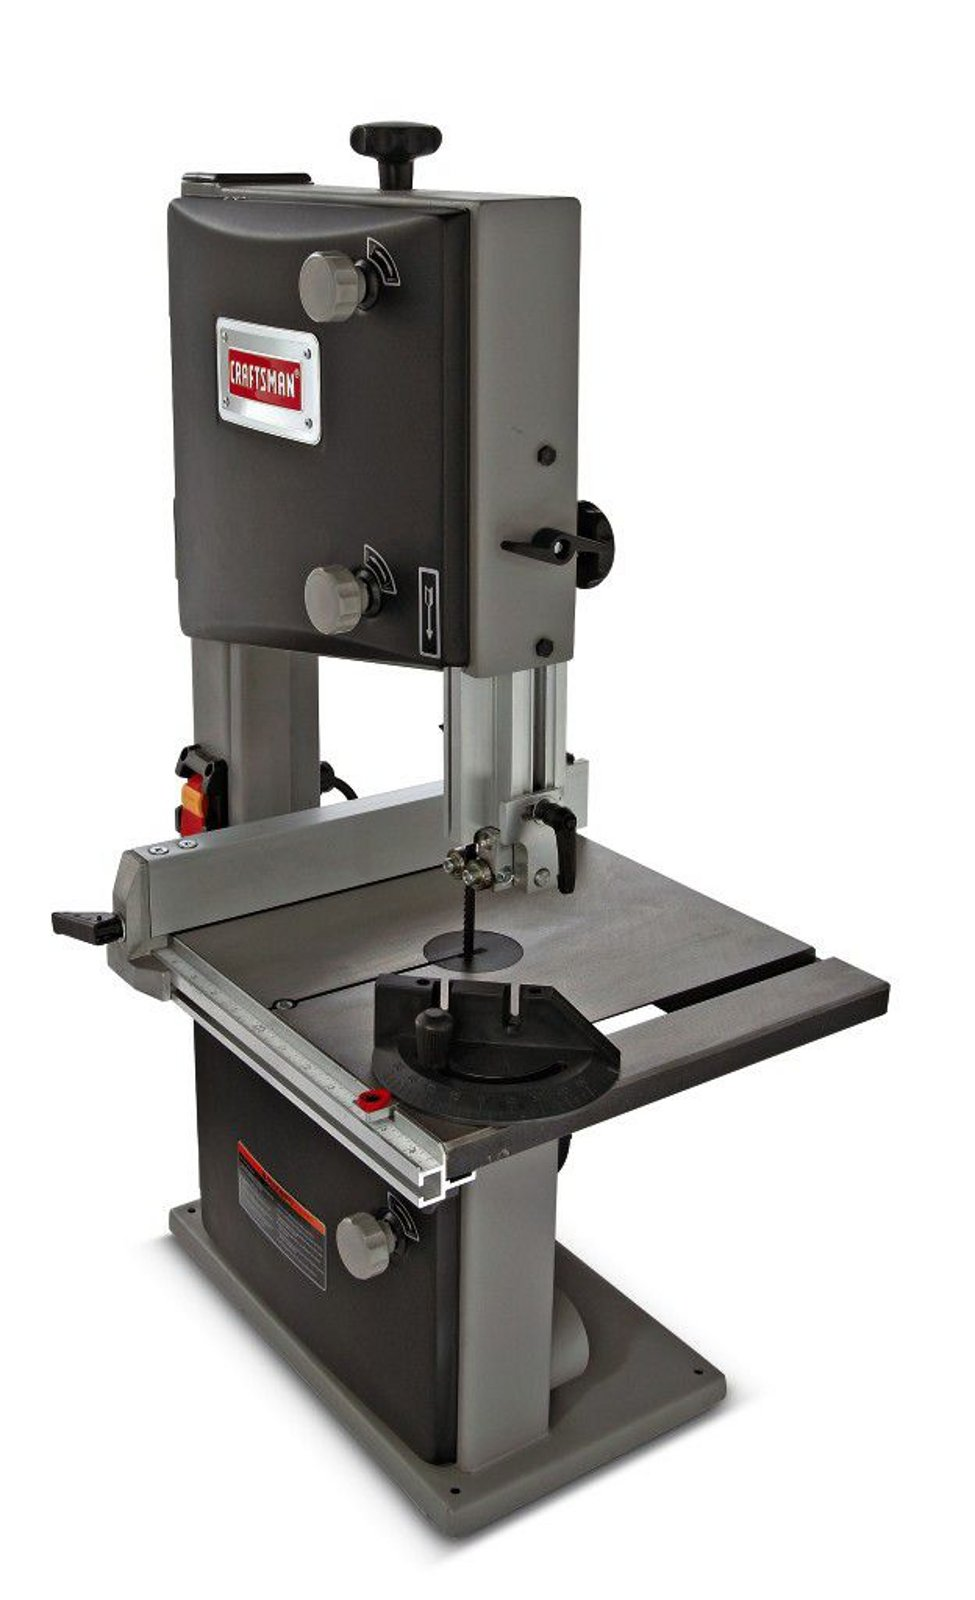 10 Inch Band Saw